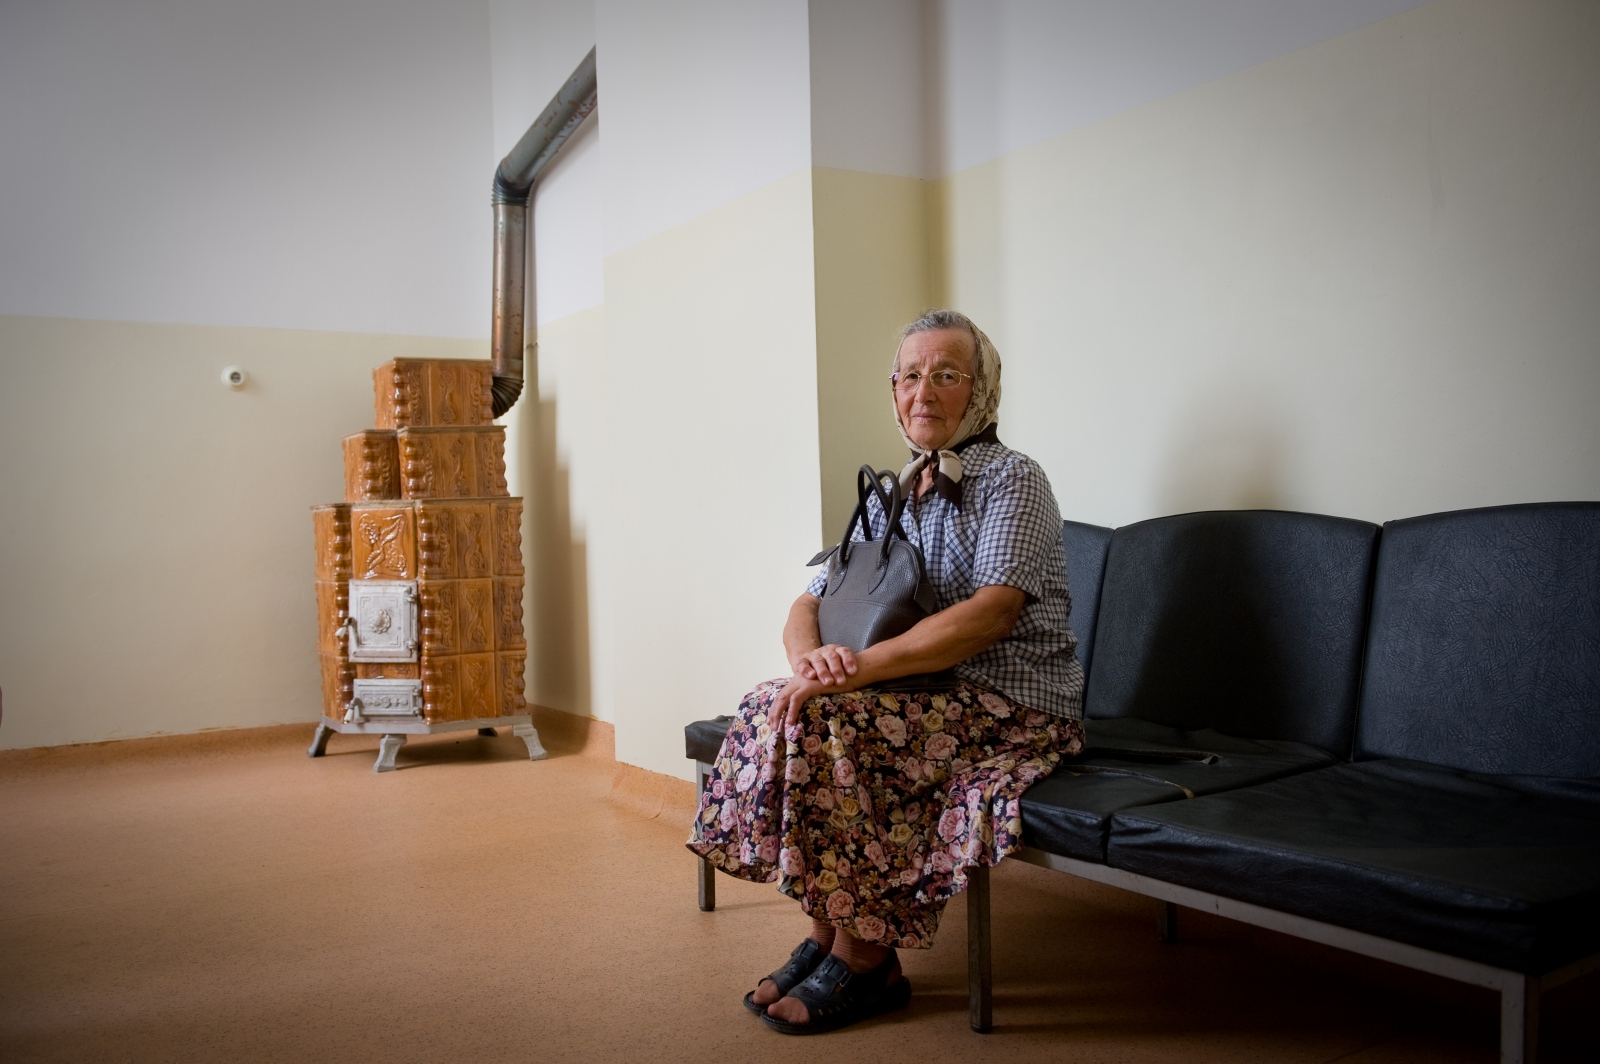 Art and Documentary Photography - Loading Waiting_room_for_doctor_Filimon_06.jpg